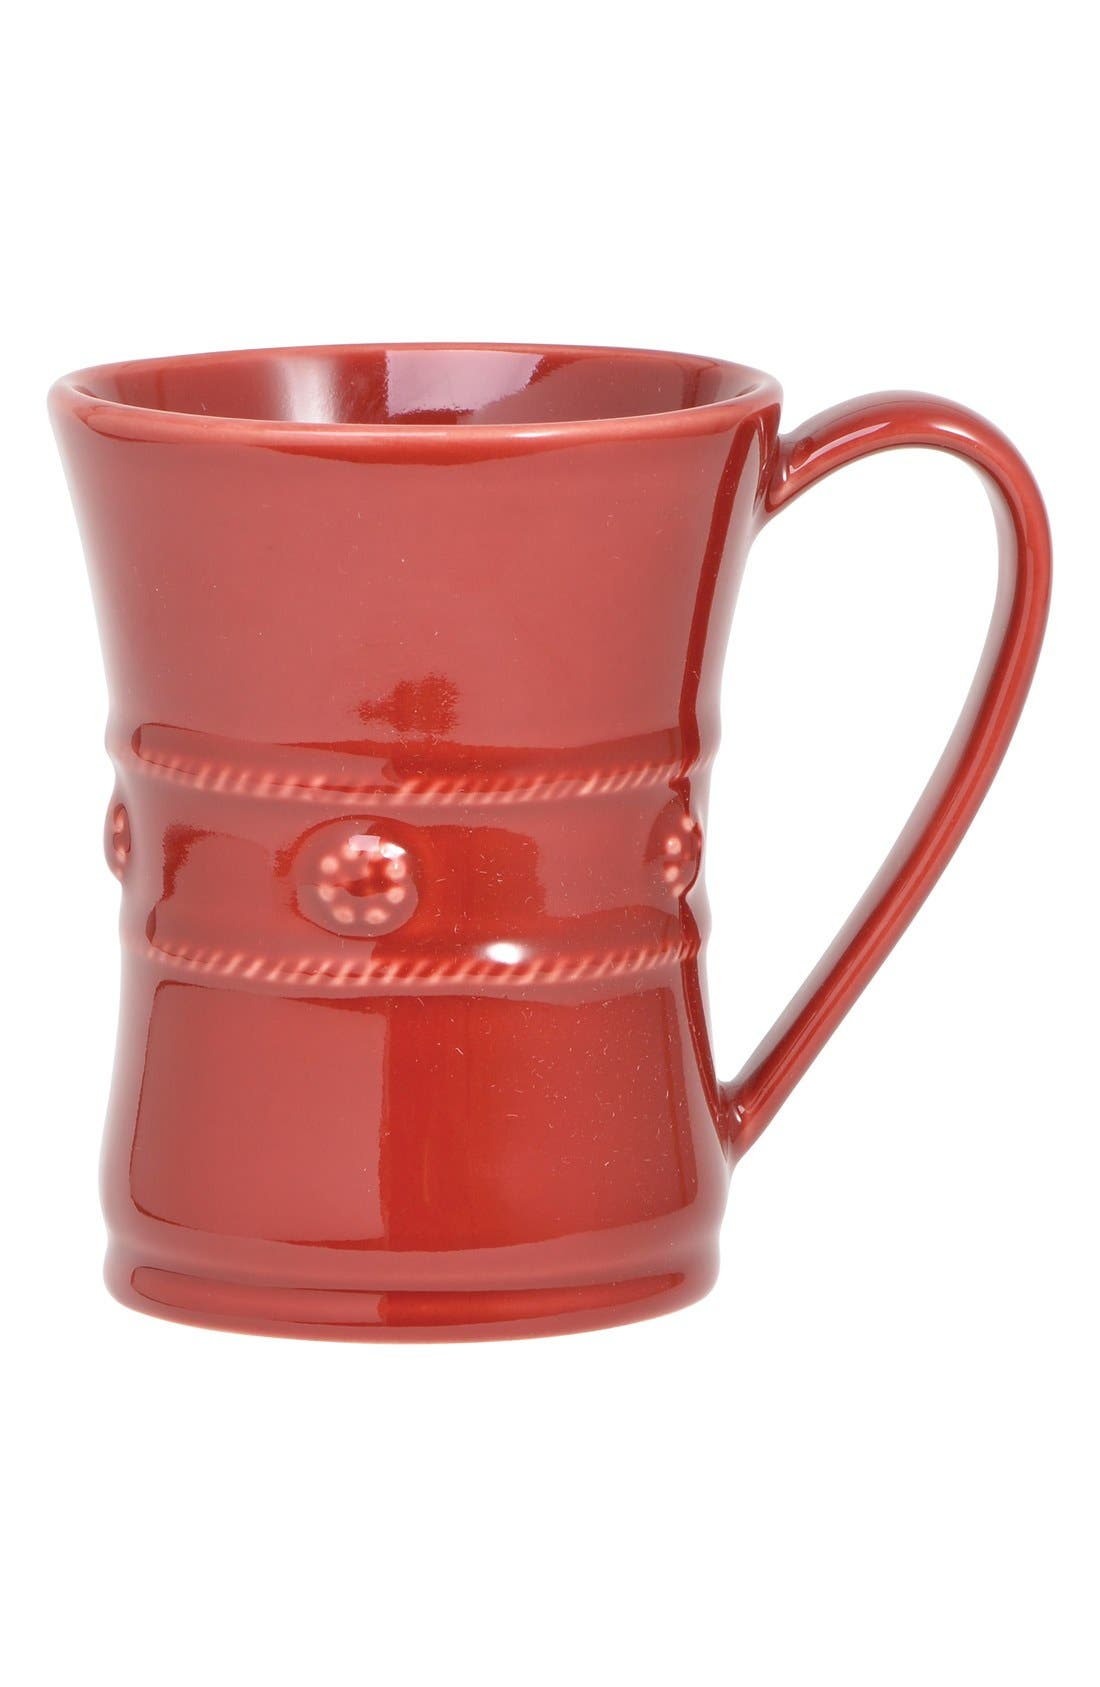 Alternate Image 1 Selected - Juliska 'Berry and Thread' Ceramic Coffee Mug